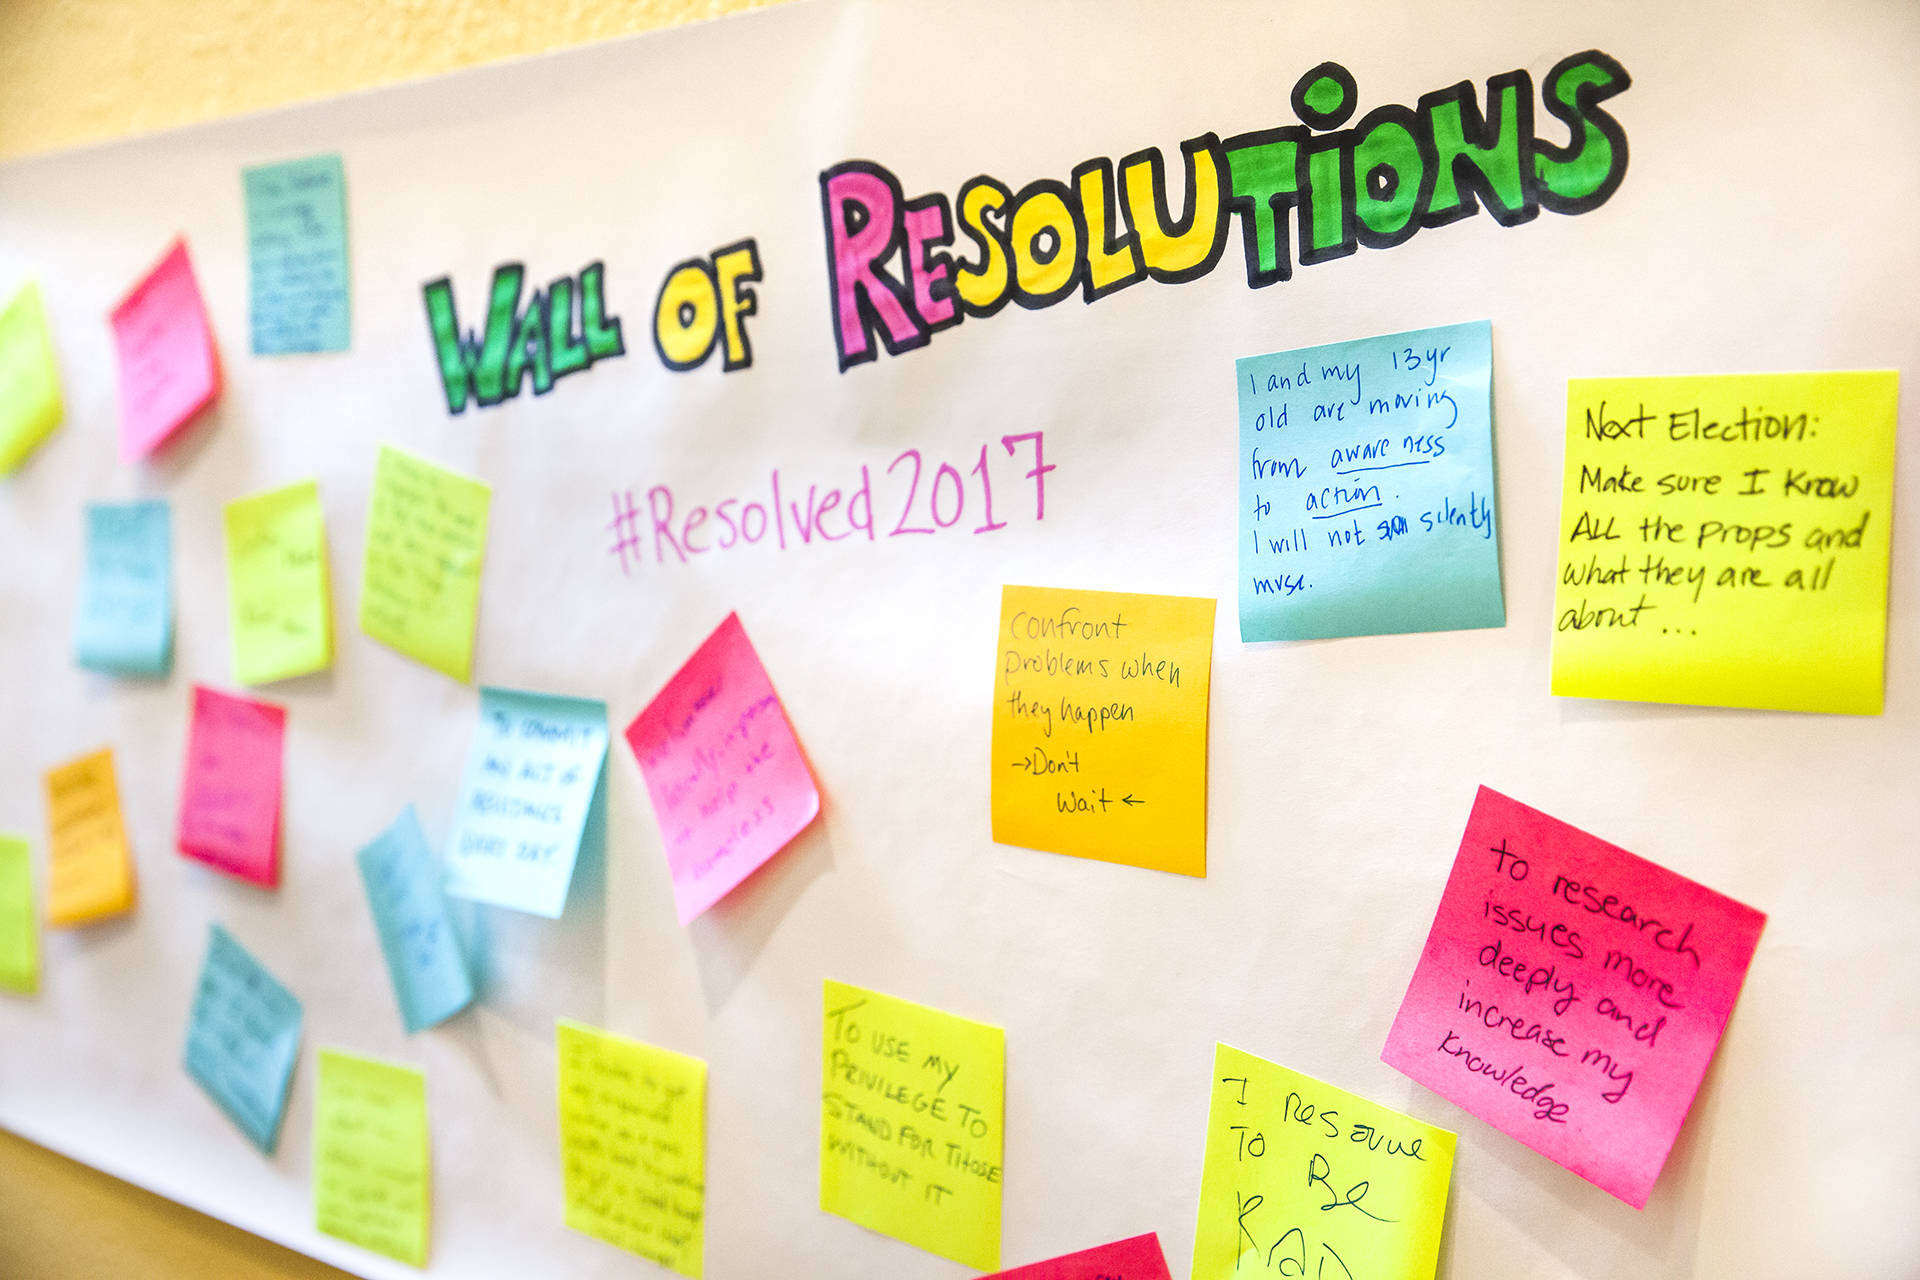 Wall of Resolutions at KQED. Brittany Hosea-Small/KQED